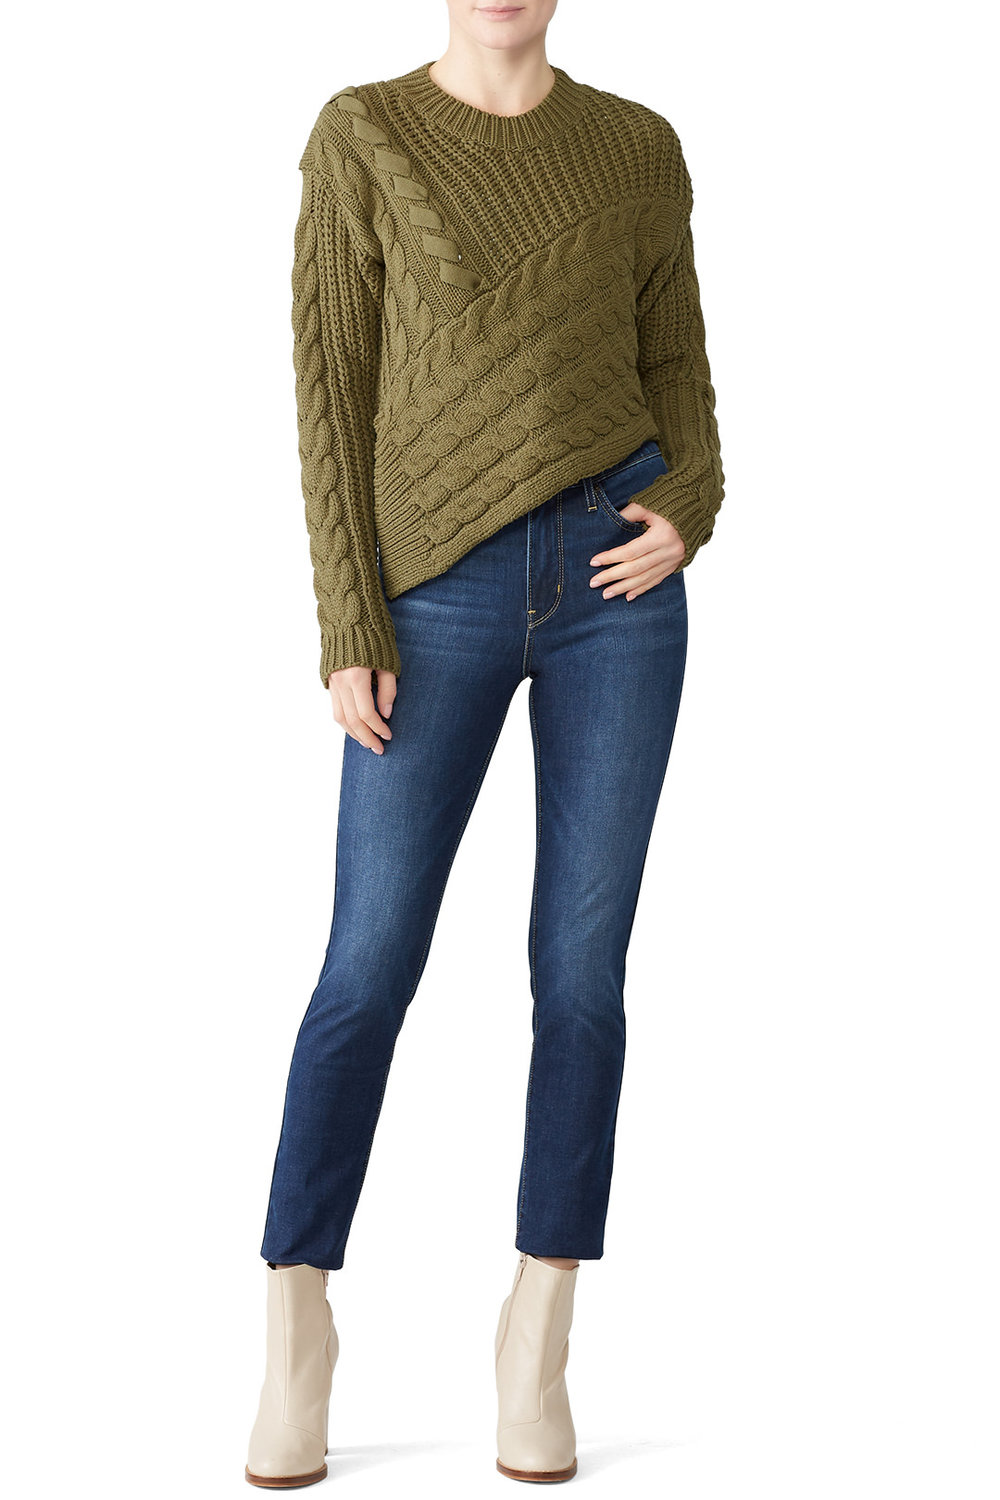 Line + Dot Olive Asymmetric Sweater - I just rented this and I couldn't be happier. It's such a fun take on a classic cable knit sweater.